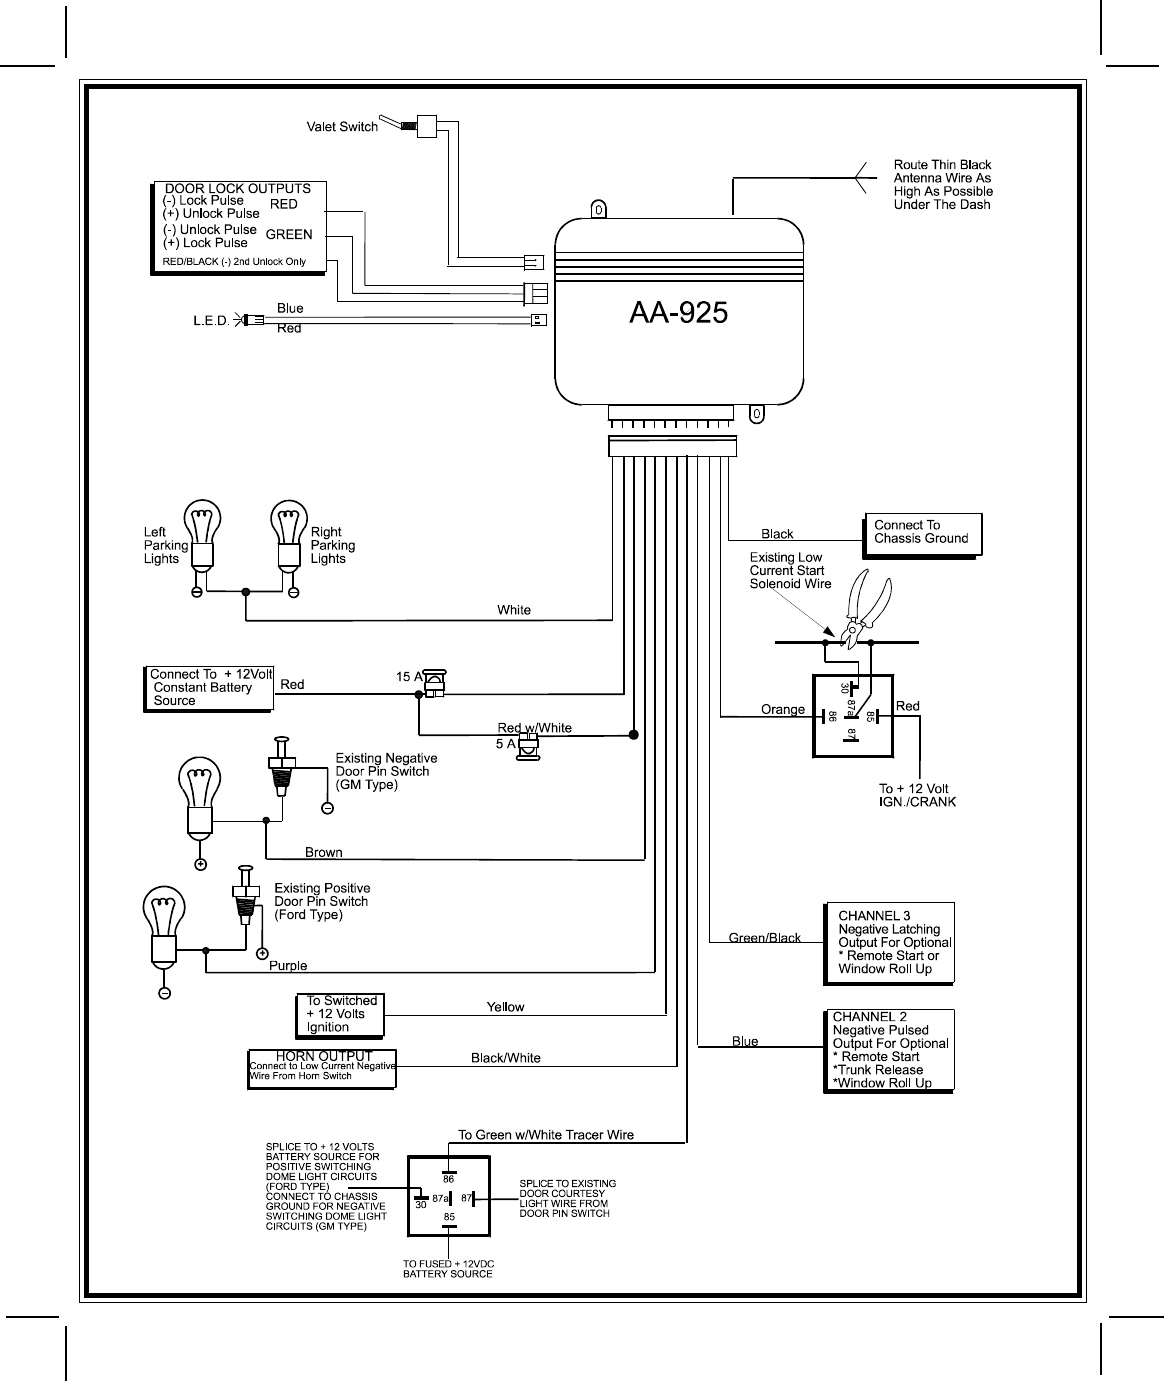 [DIAGRAM_4FR]  Bulldog Security Keyless Entry System Wiring Diagram. Keyless Entry Wiring  Help Unlock Dome Wire Scion Xb Forum. Keyless Entry System Wiring Diagram  Decor. Excellent Sanji Zx400 Wiring Diagram Bulldog Remote. Bulldog Wiring | Bulldog Security Remote Starter Wiring Diagram 1999 Chevy Silverado |  | Wiring Diagram and Schematics